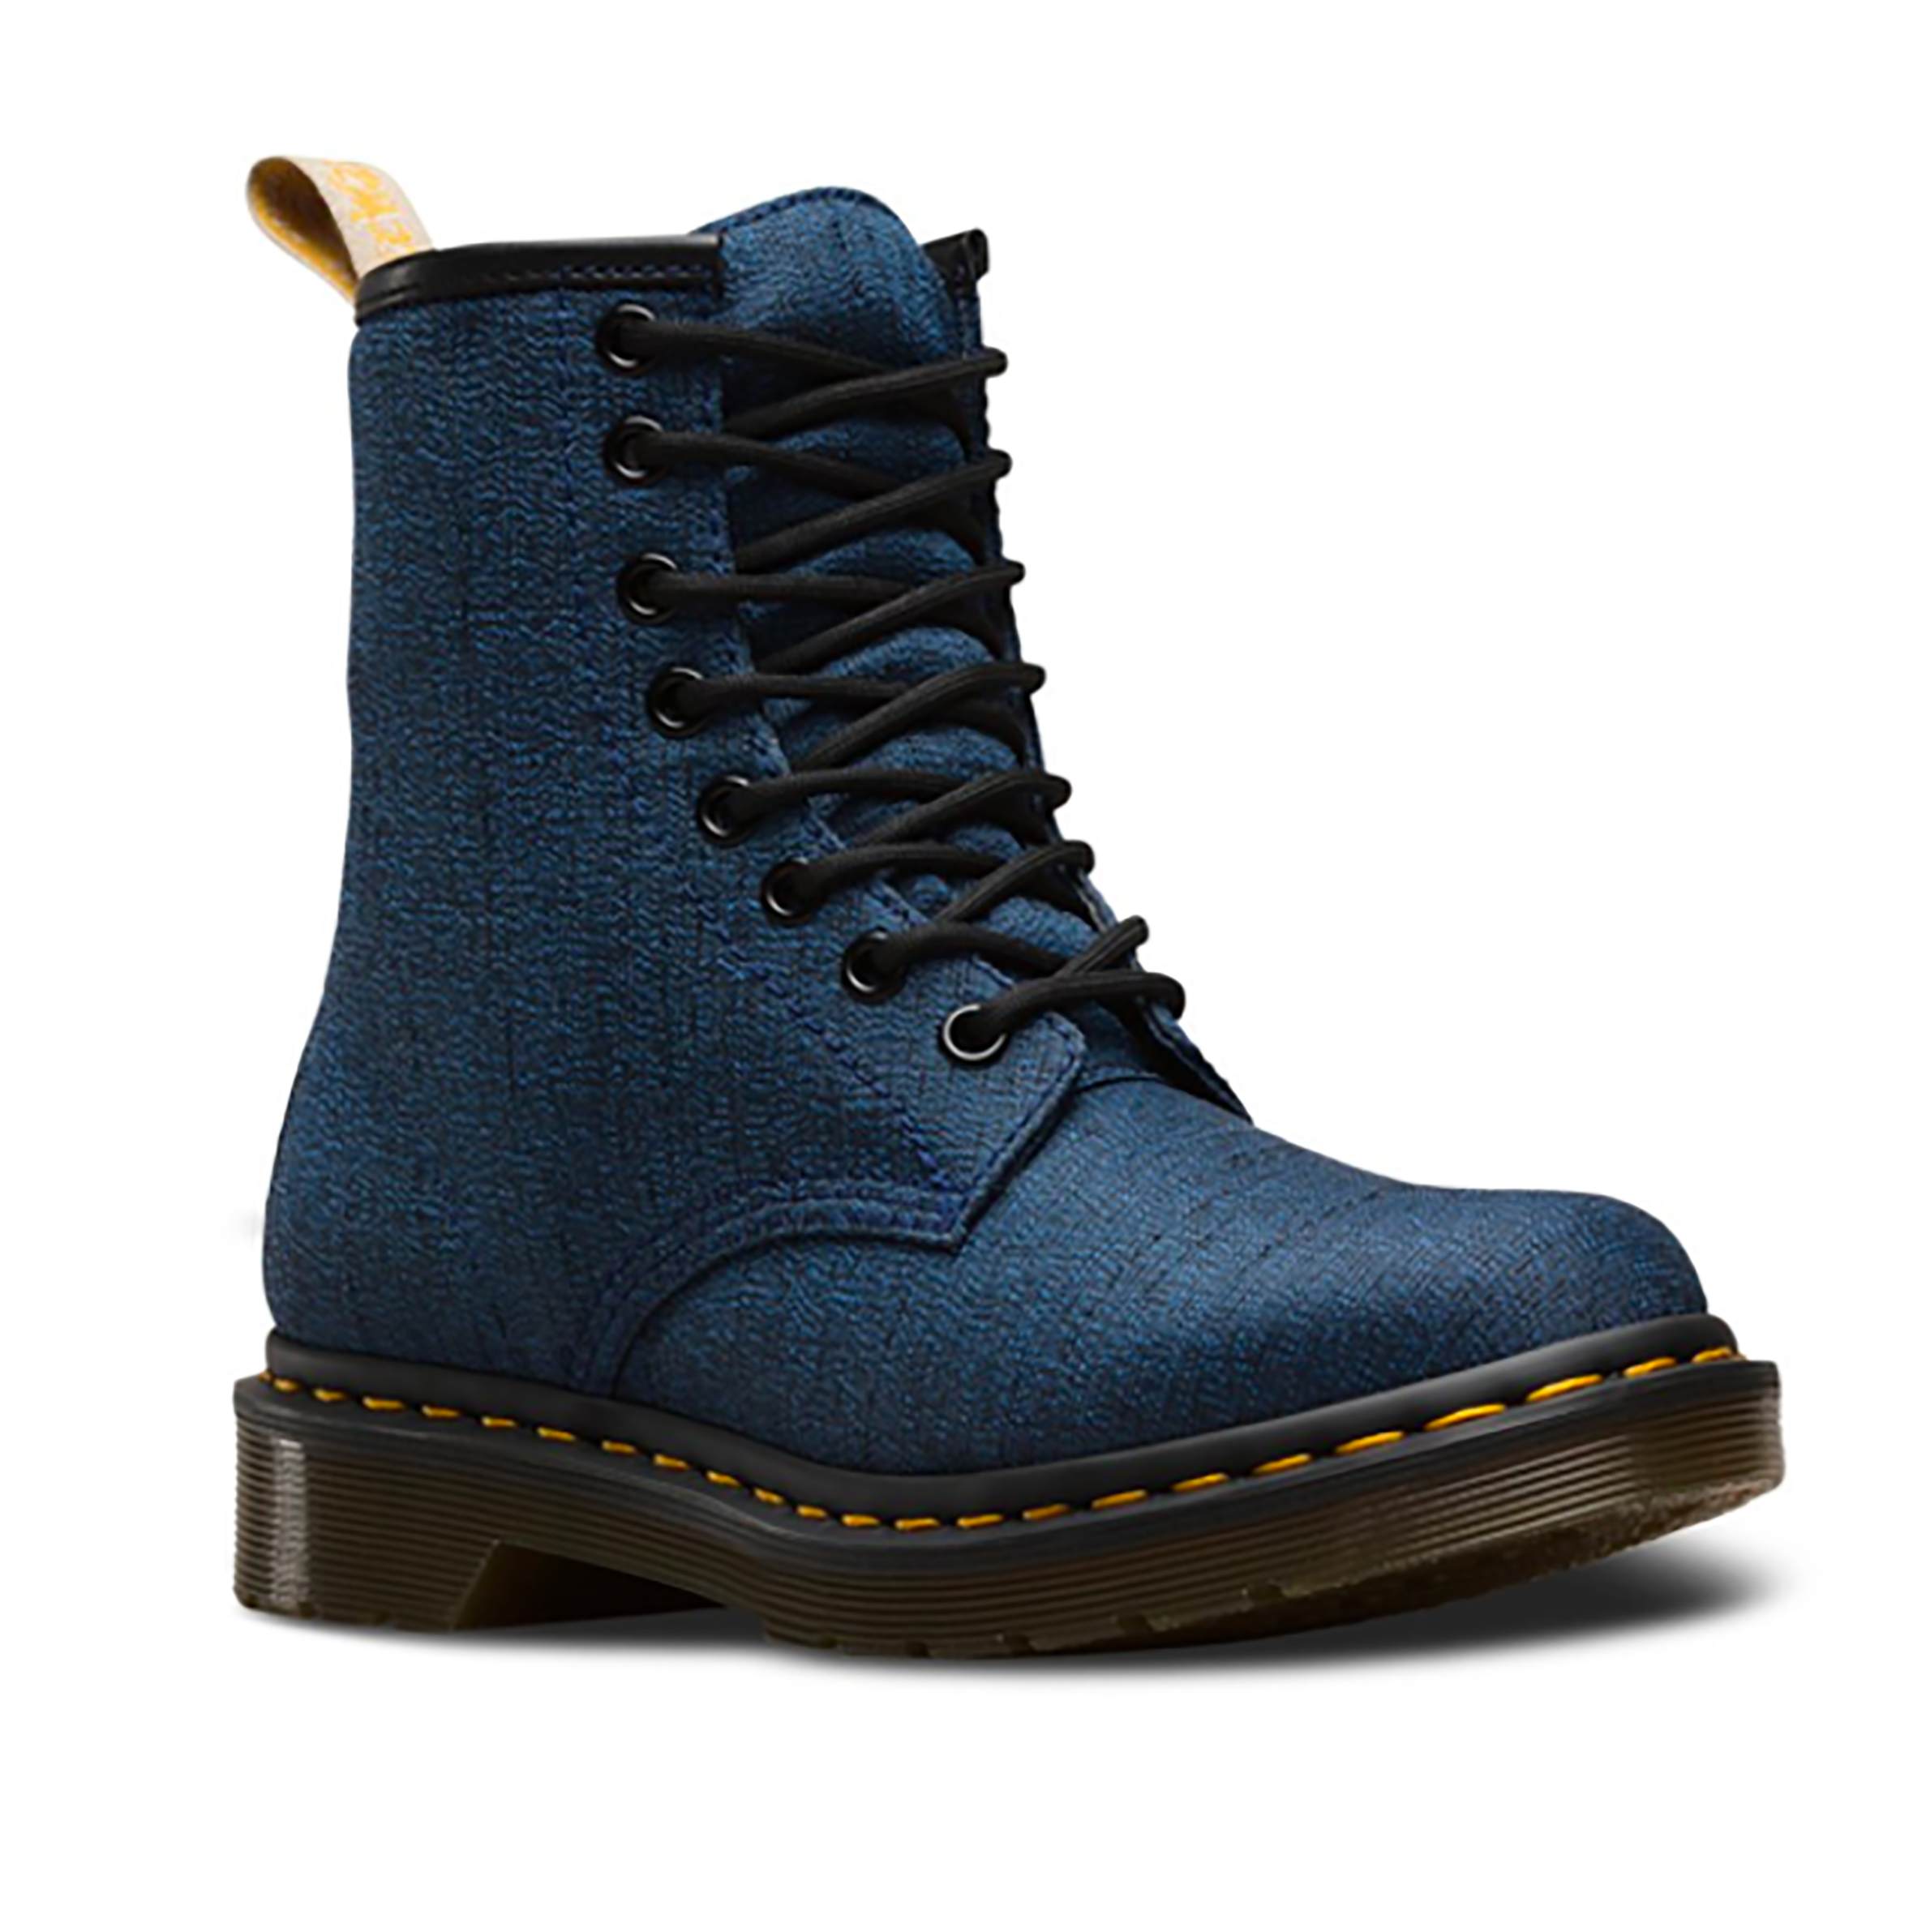 - Vegan Castel Boot in Indigo from Dr. Martens. Fun fact:British brand,Dr. Martens, whom specializes in boots that last a lifetime, are now a hit among the vegan community.https://mooshoes.myshopify.com/collections/dr-martens/products/vegan-castel-boot-in-indigo-from-dr-martensInstagram:@drmartensofficial